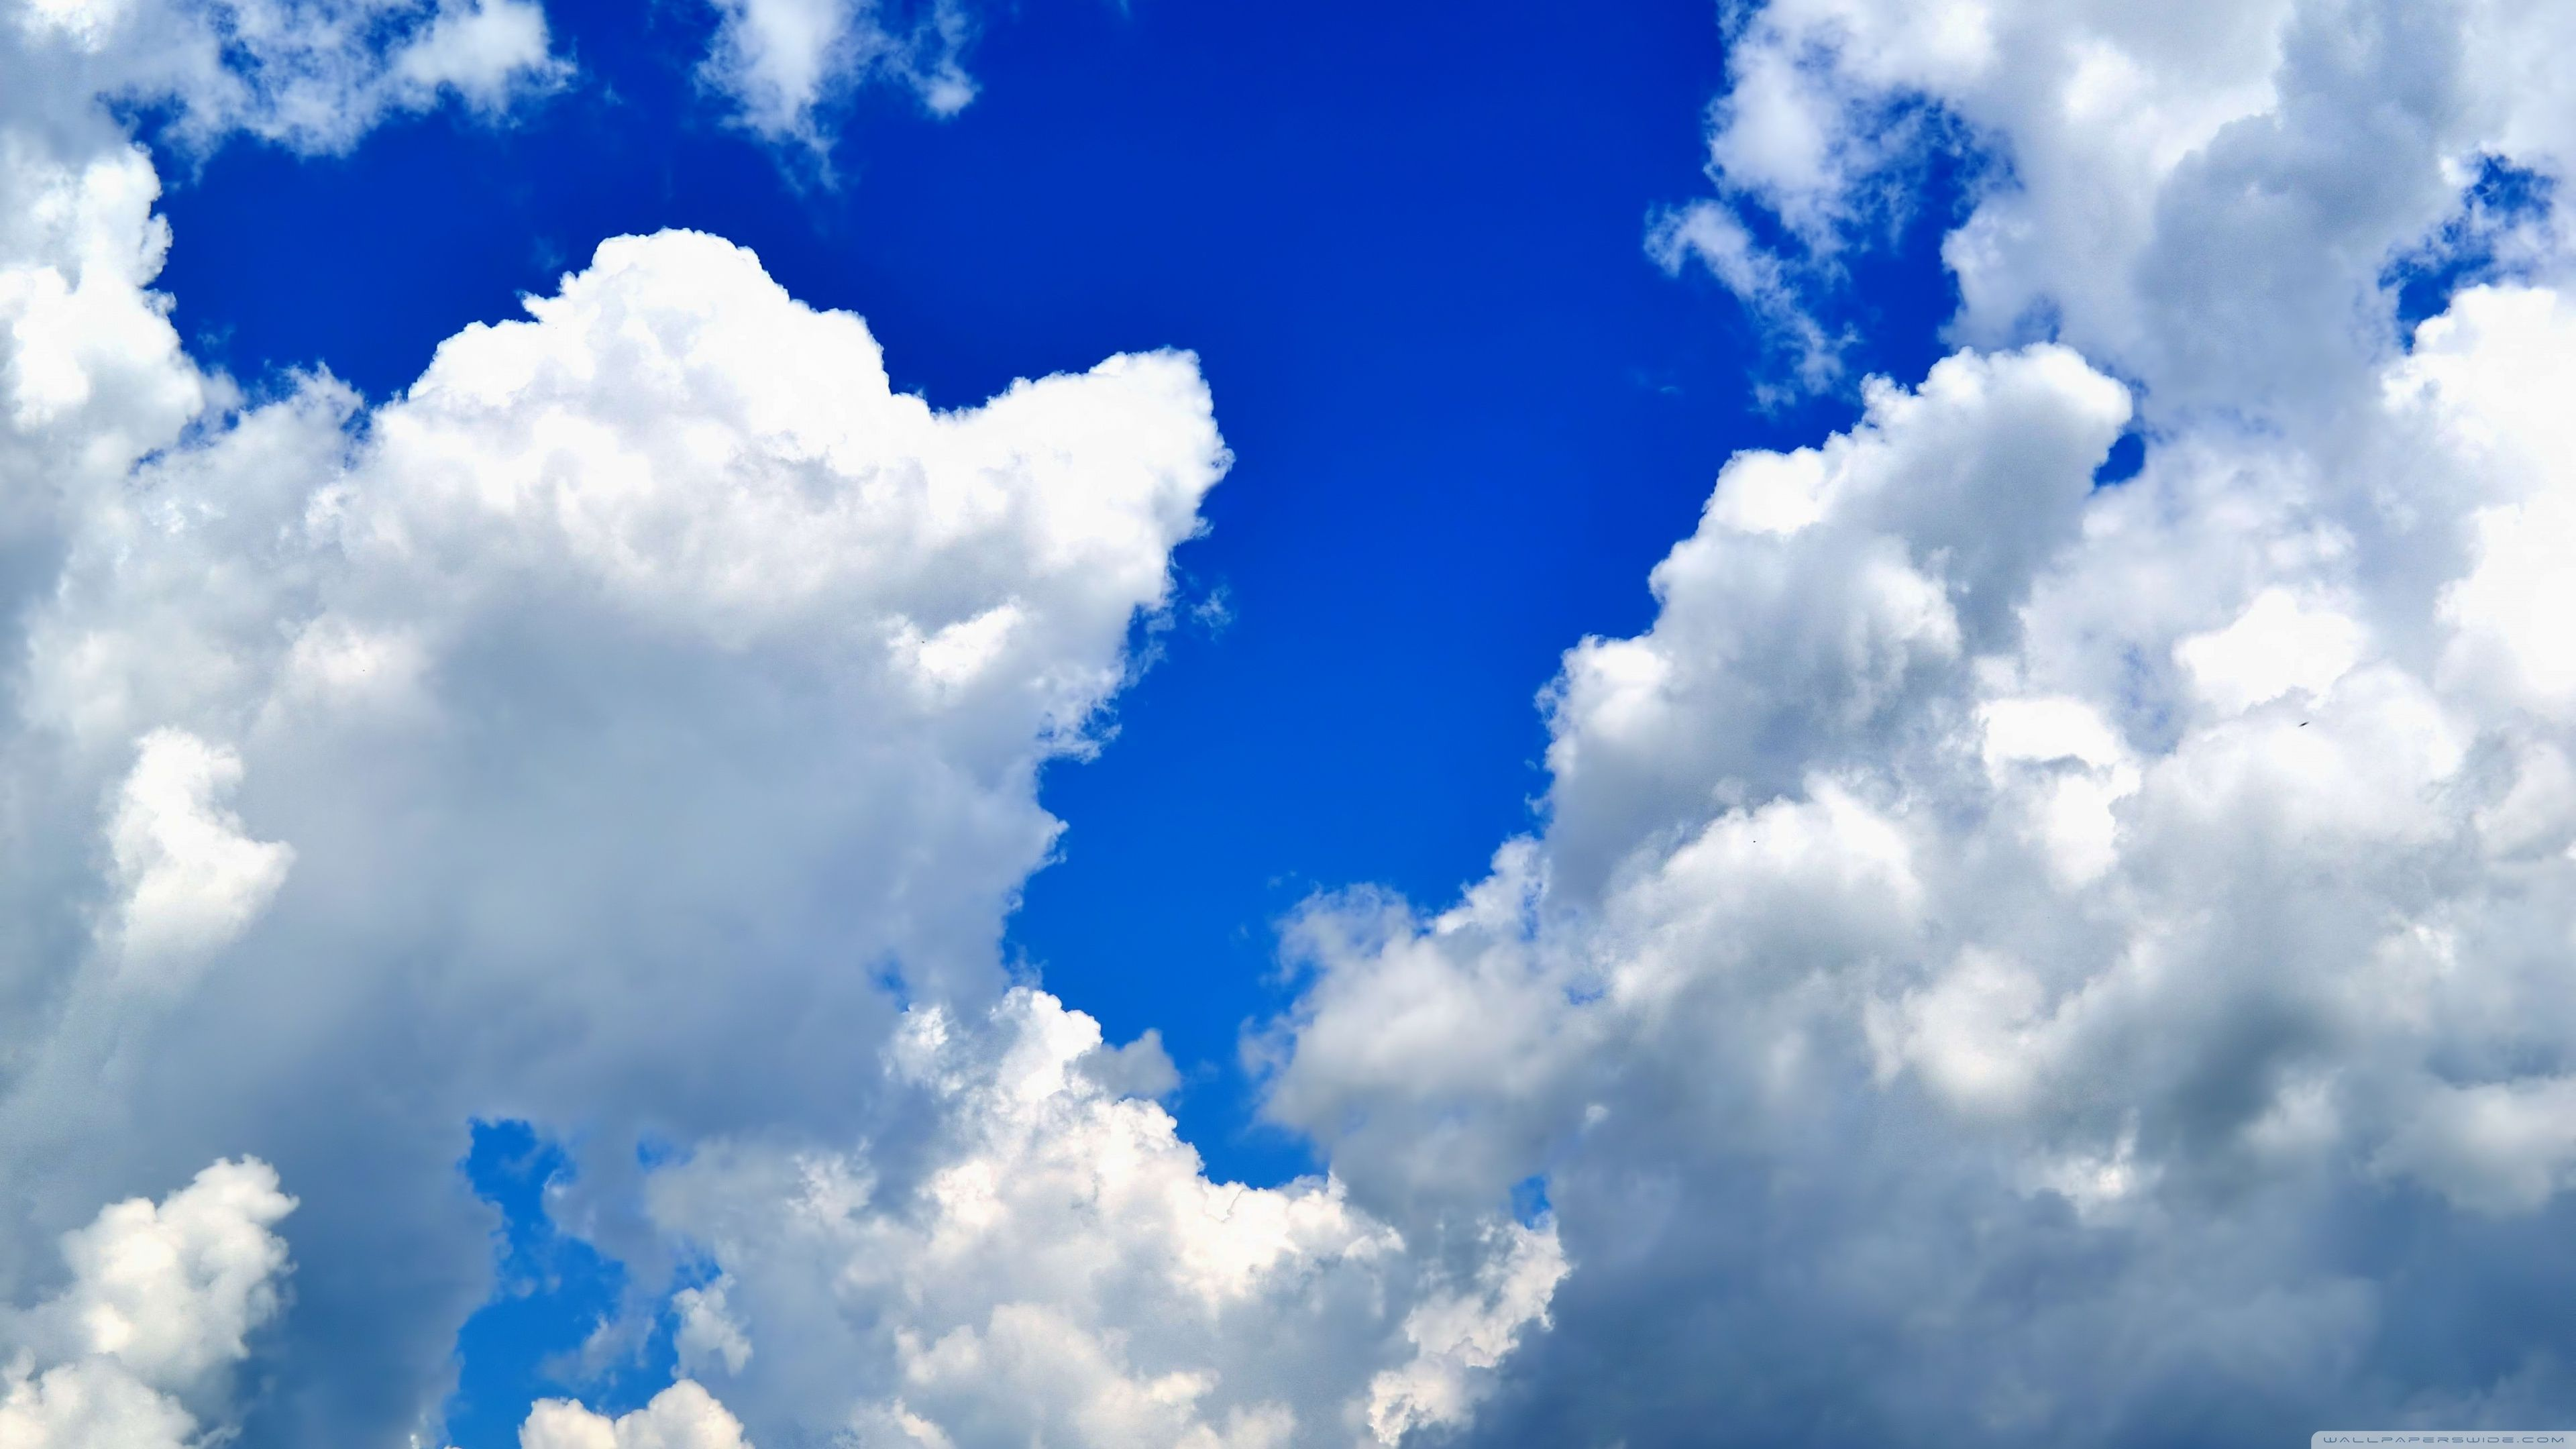 Clouds Ultra HD Desktop Backgrounds Wallpapers for 4K UHD TV